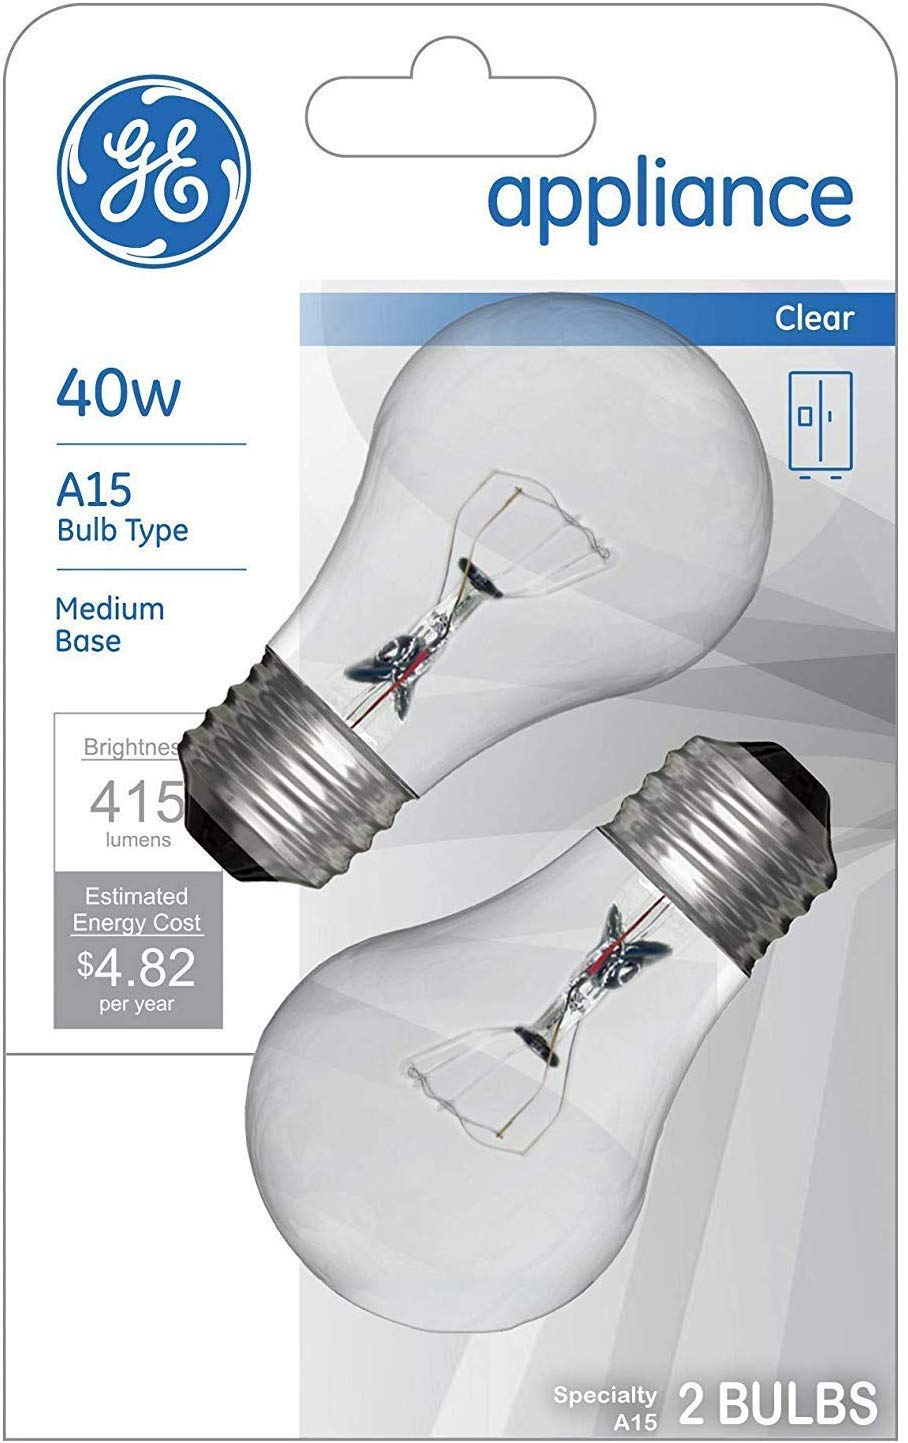 1-Pack A15 Bulb Type 415 Lumens Medium Base 2-Count per Pack GE Appliance Clear Light Bulb 40w